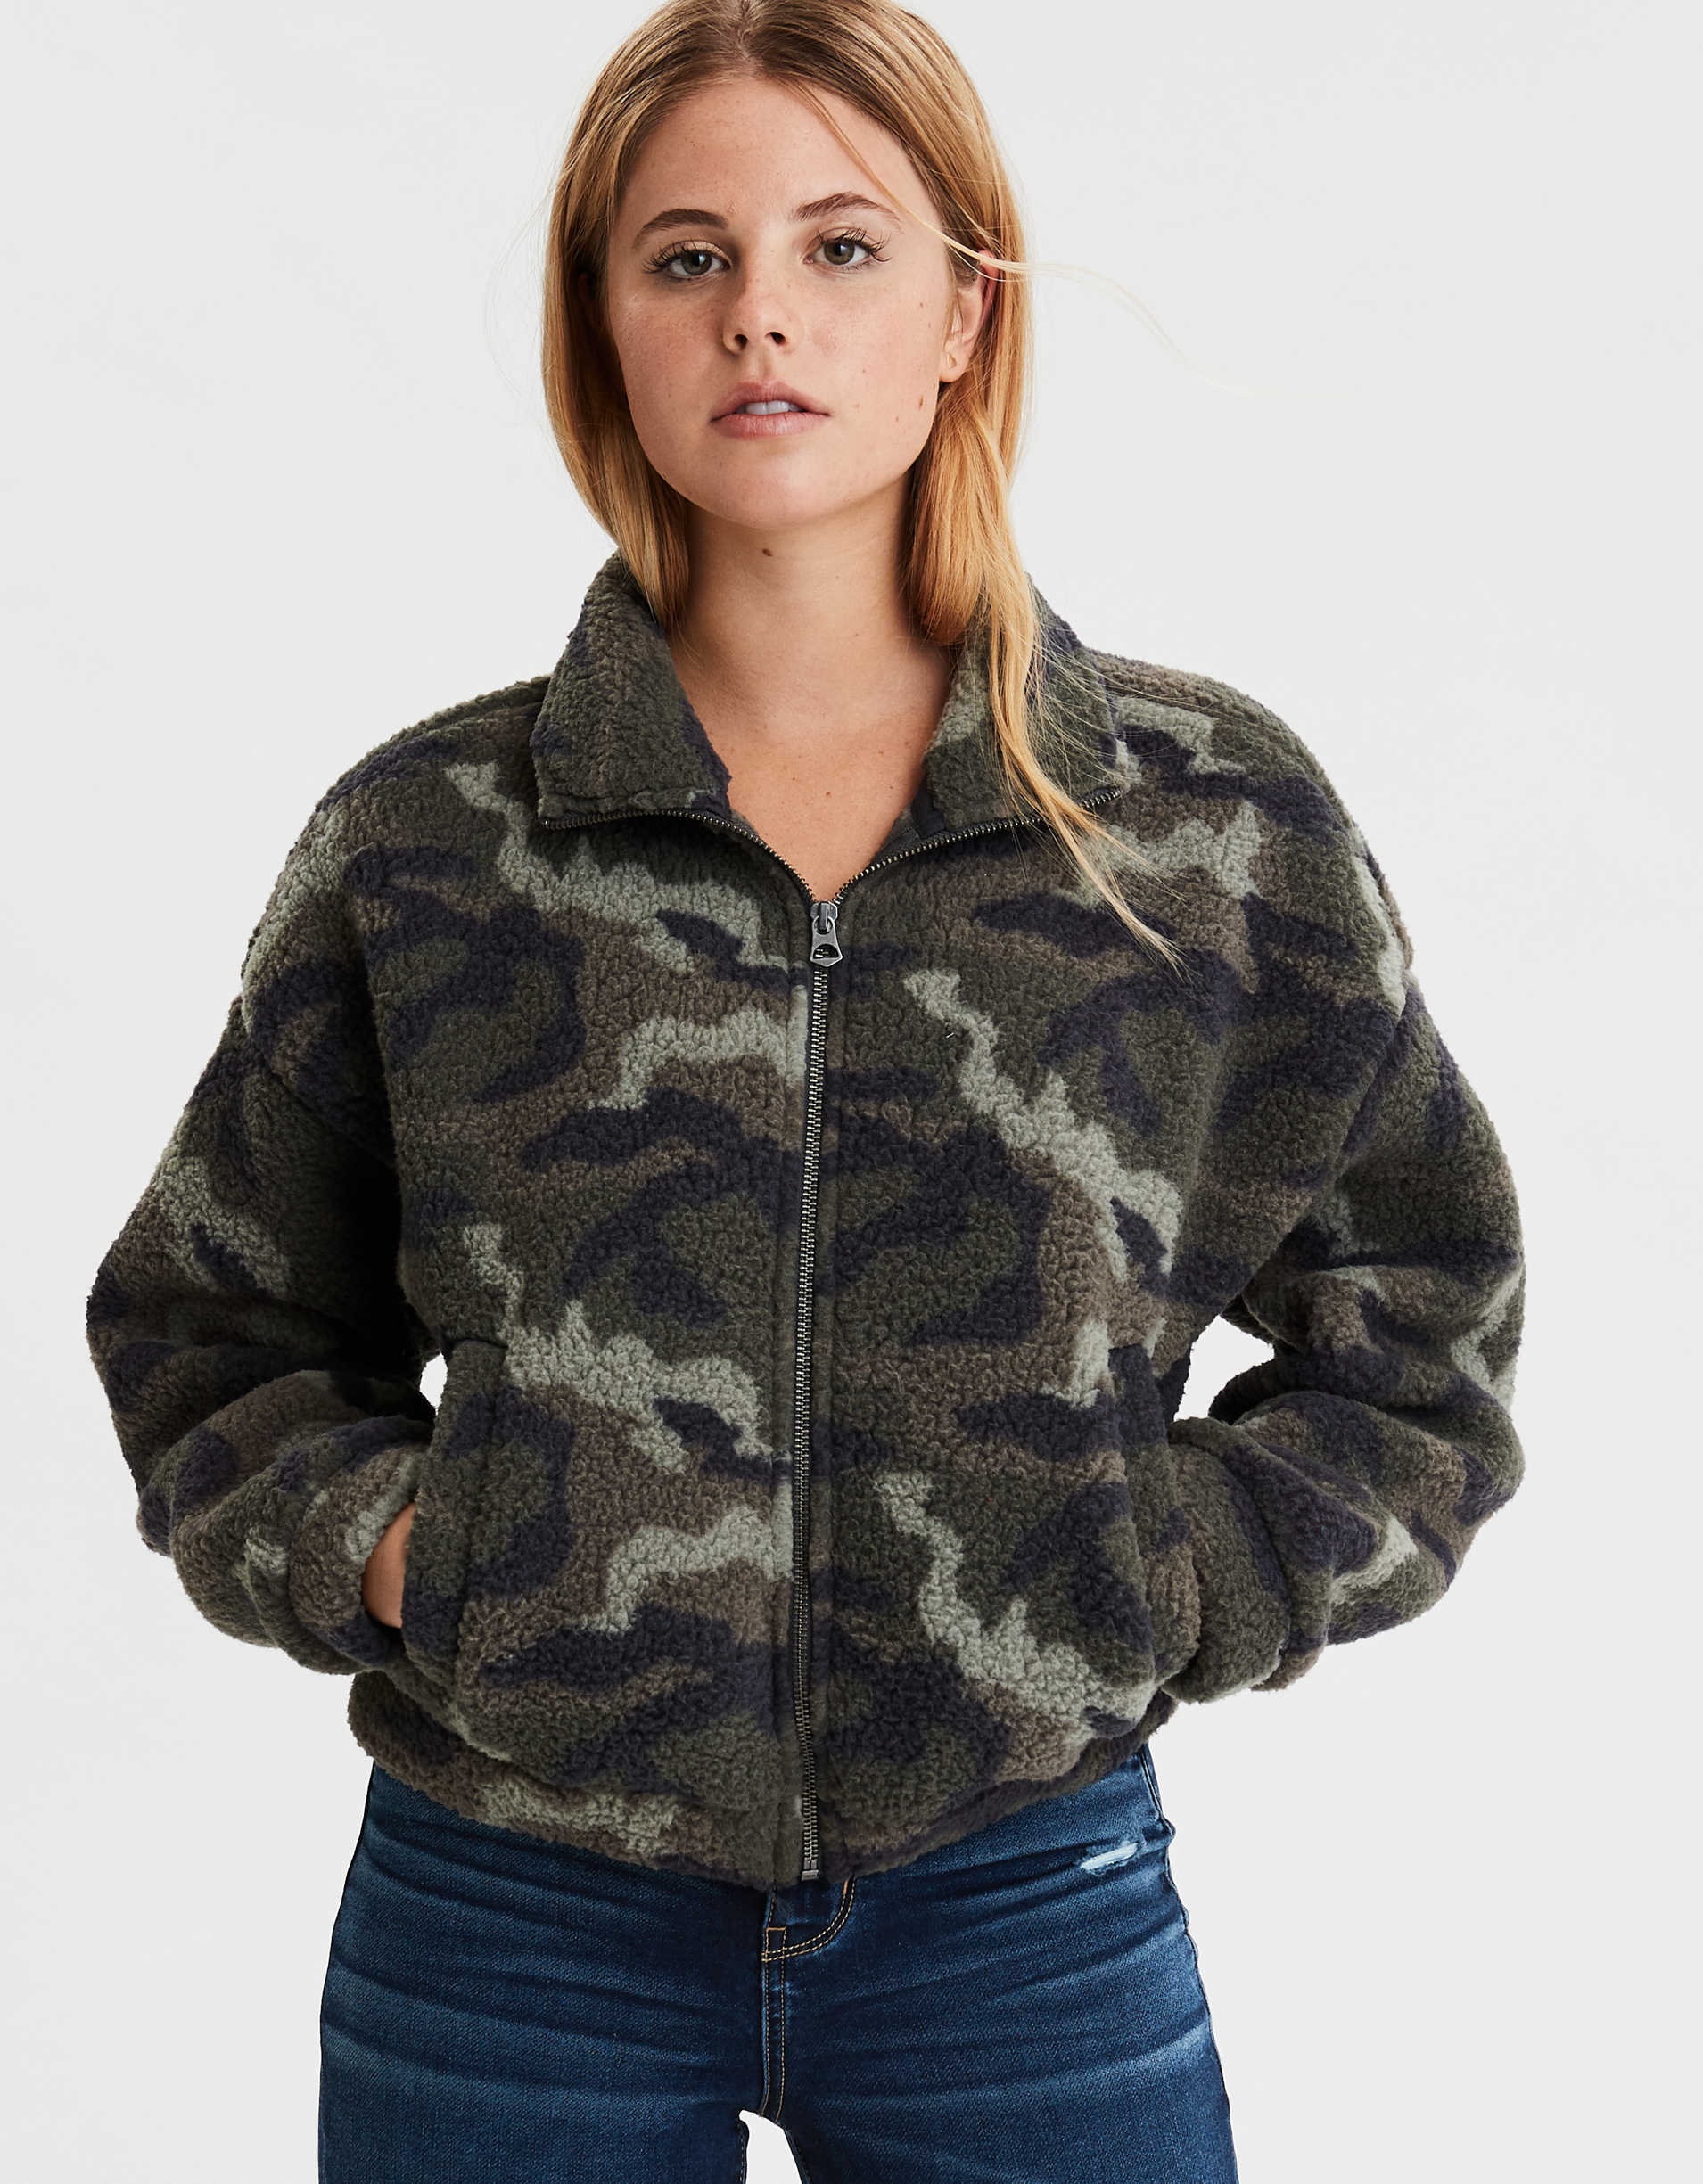 Ae Fuzzy Sherpa Printed Zip Up Sweatshirt by American Eagle Outfitters